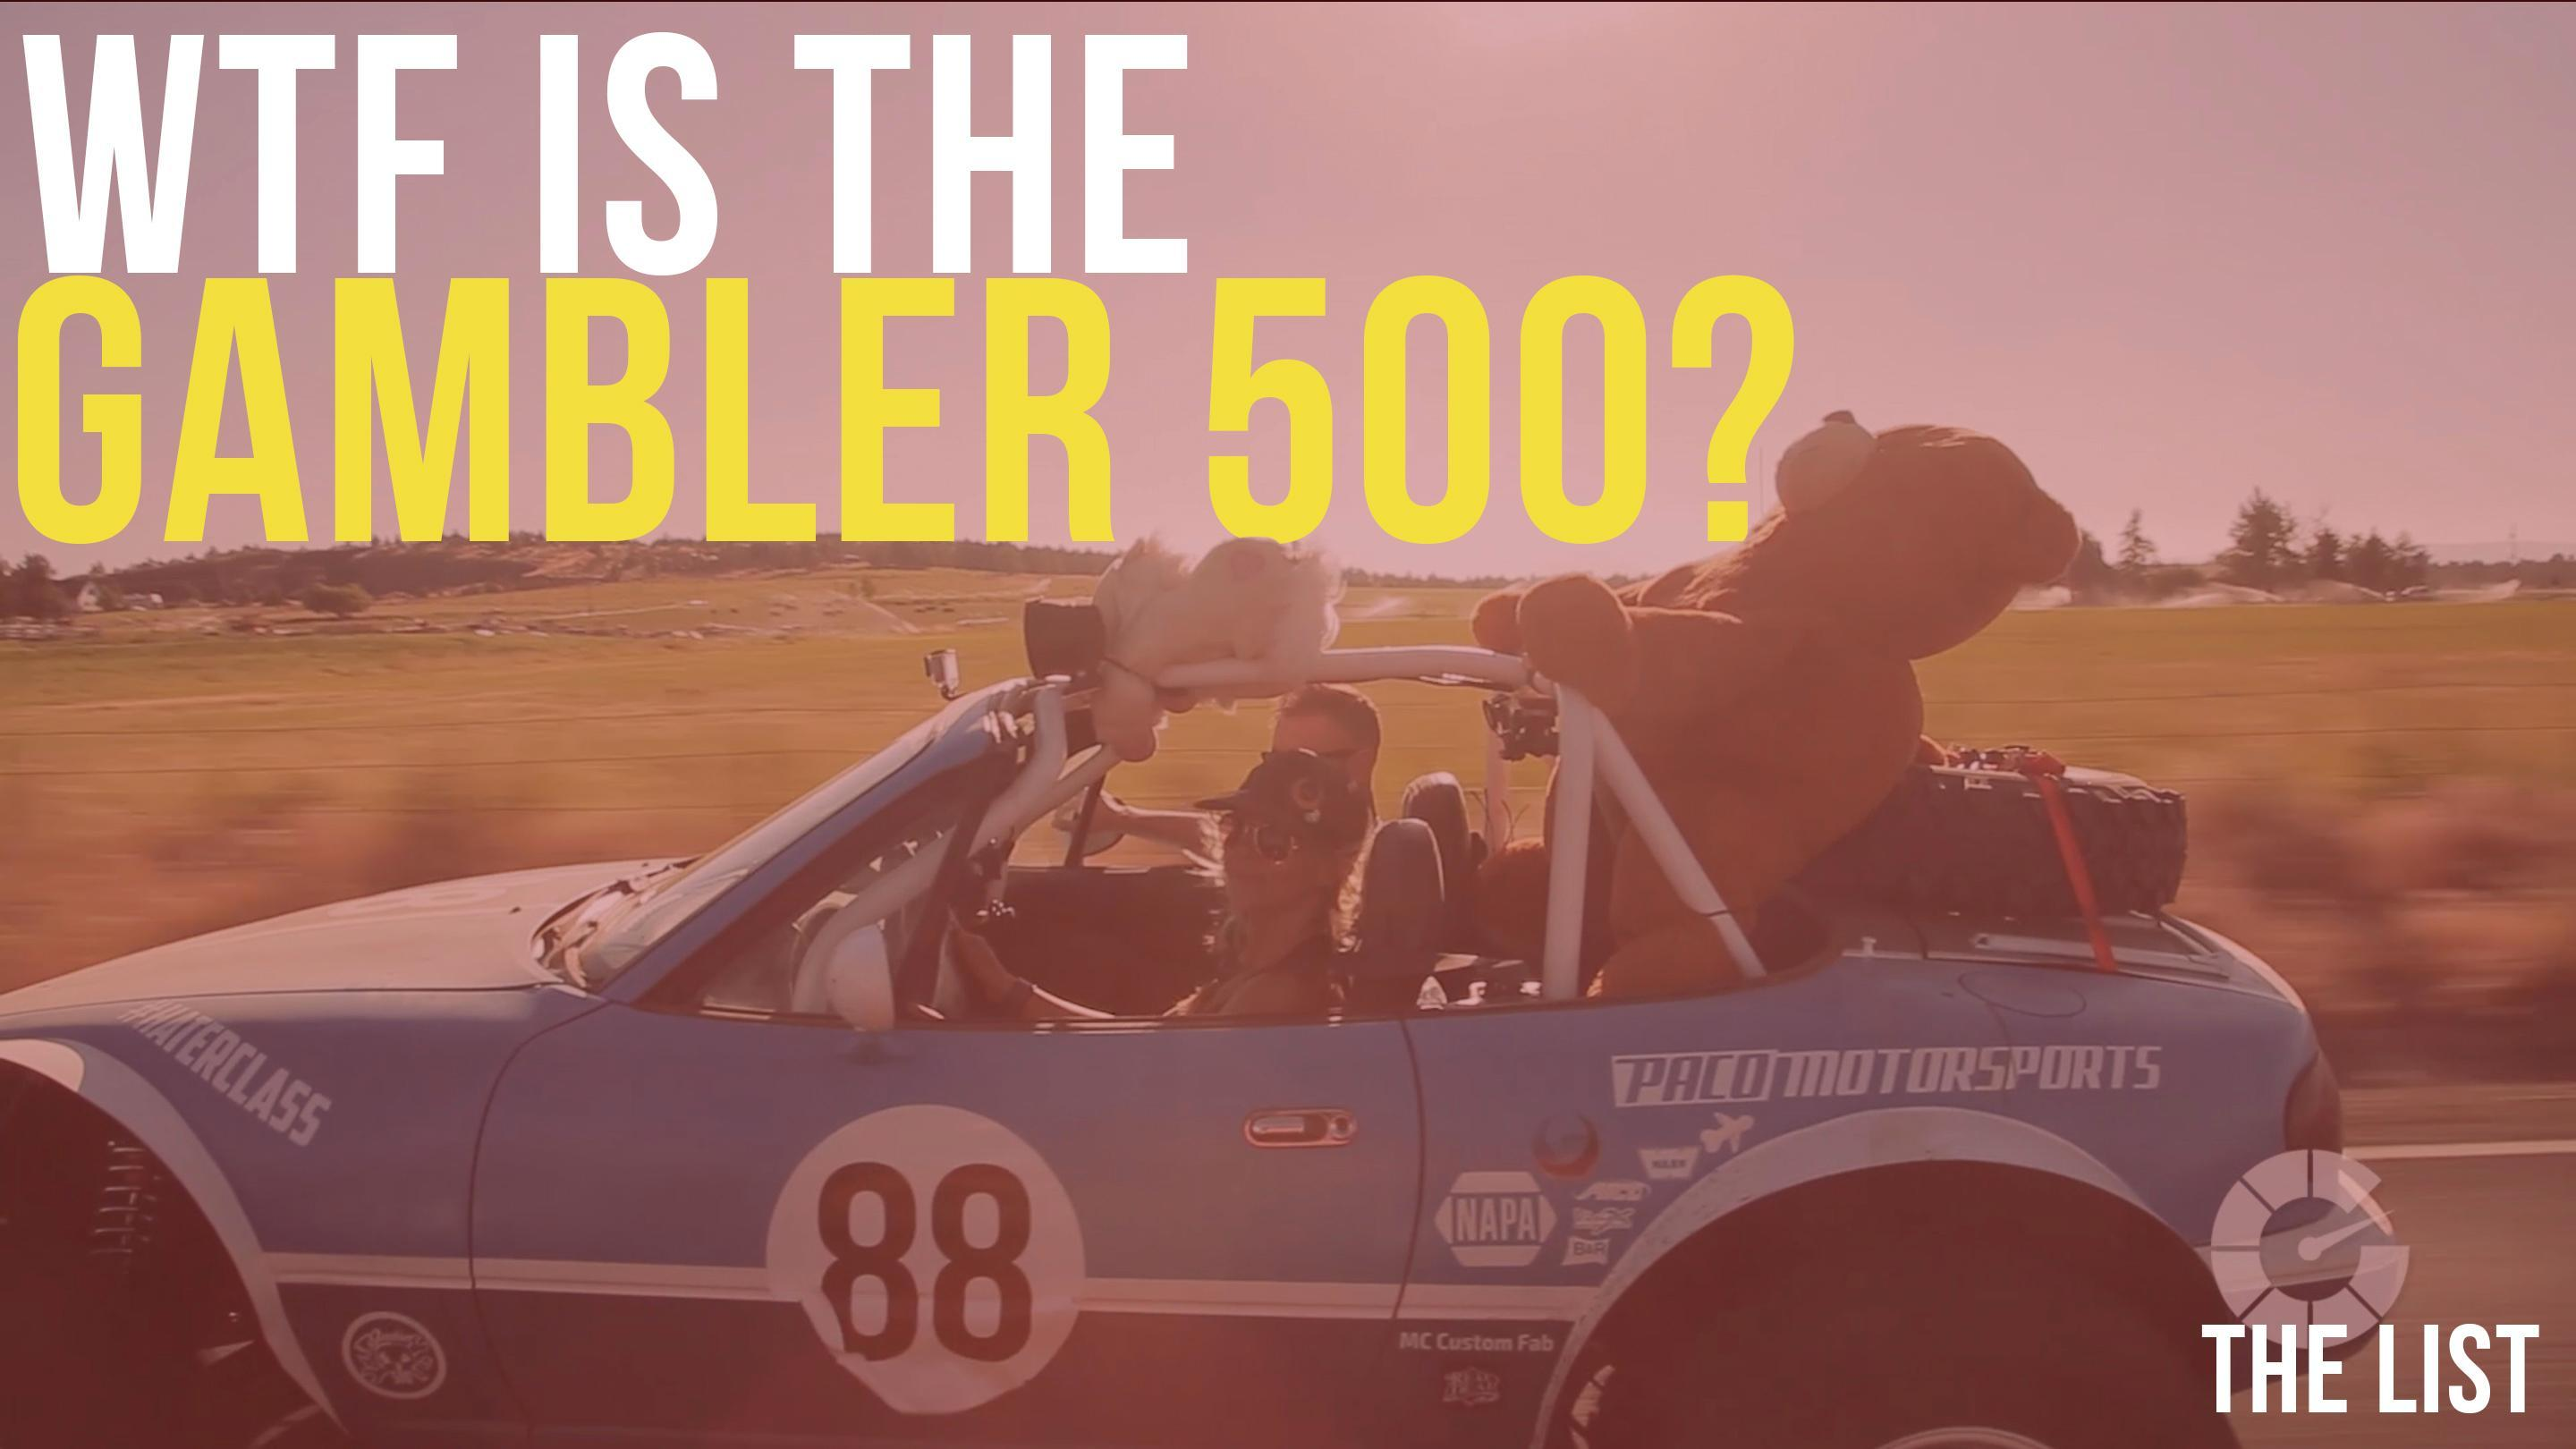 Drive The Gambler 500 | The List #0500